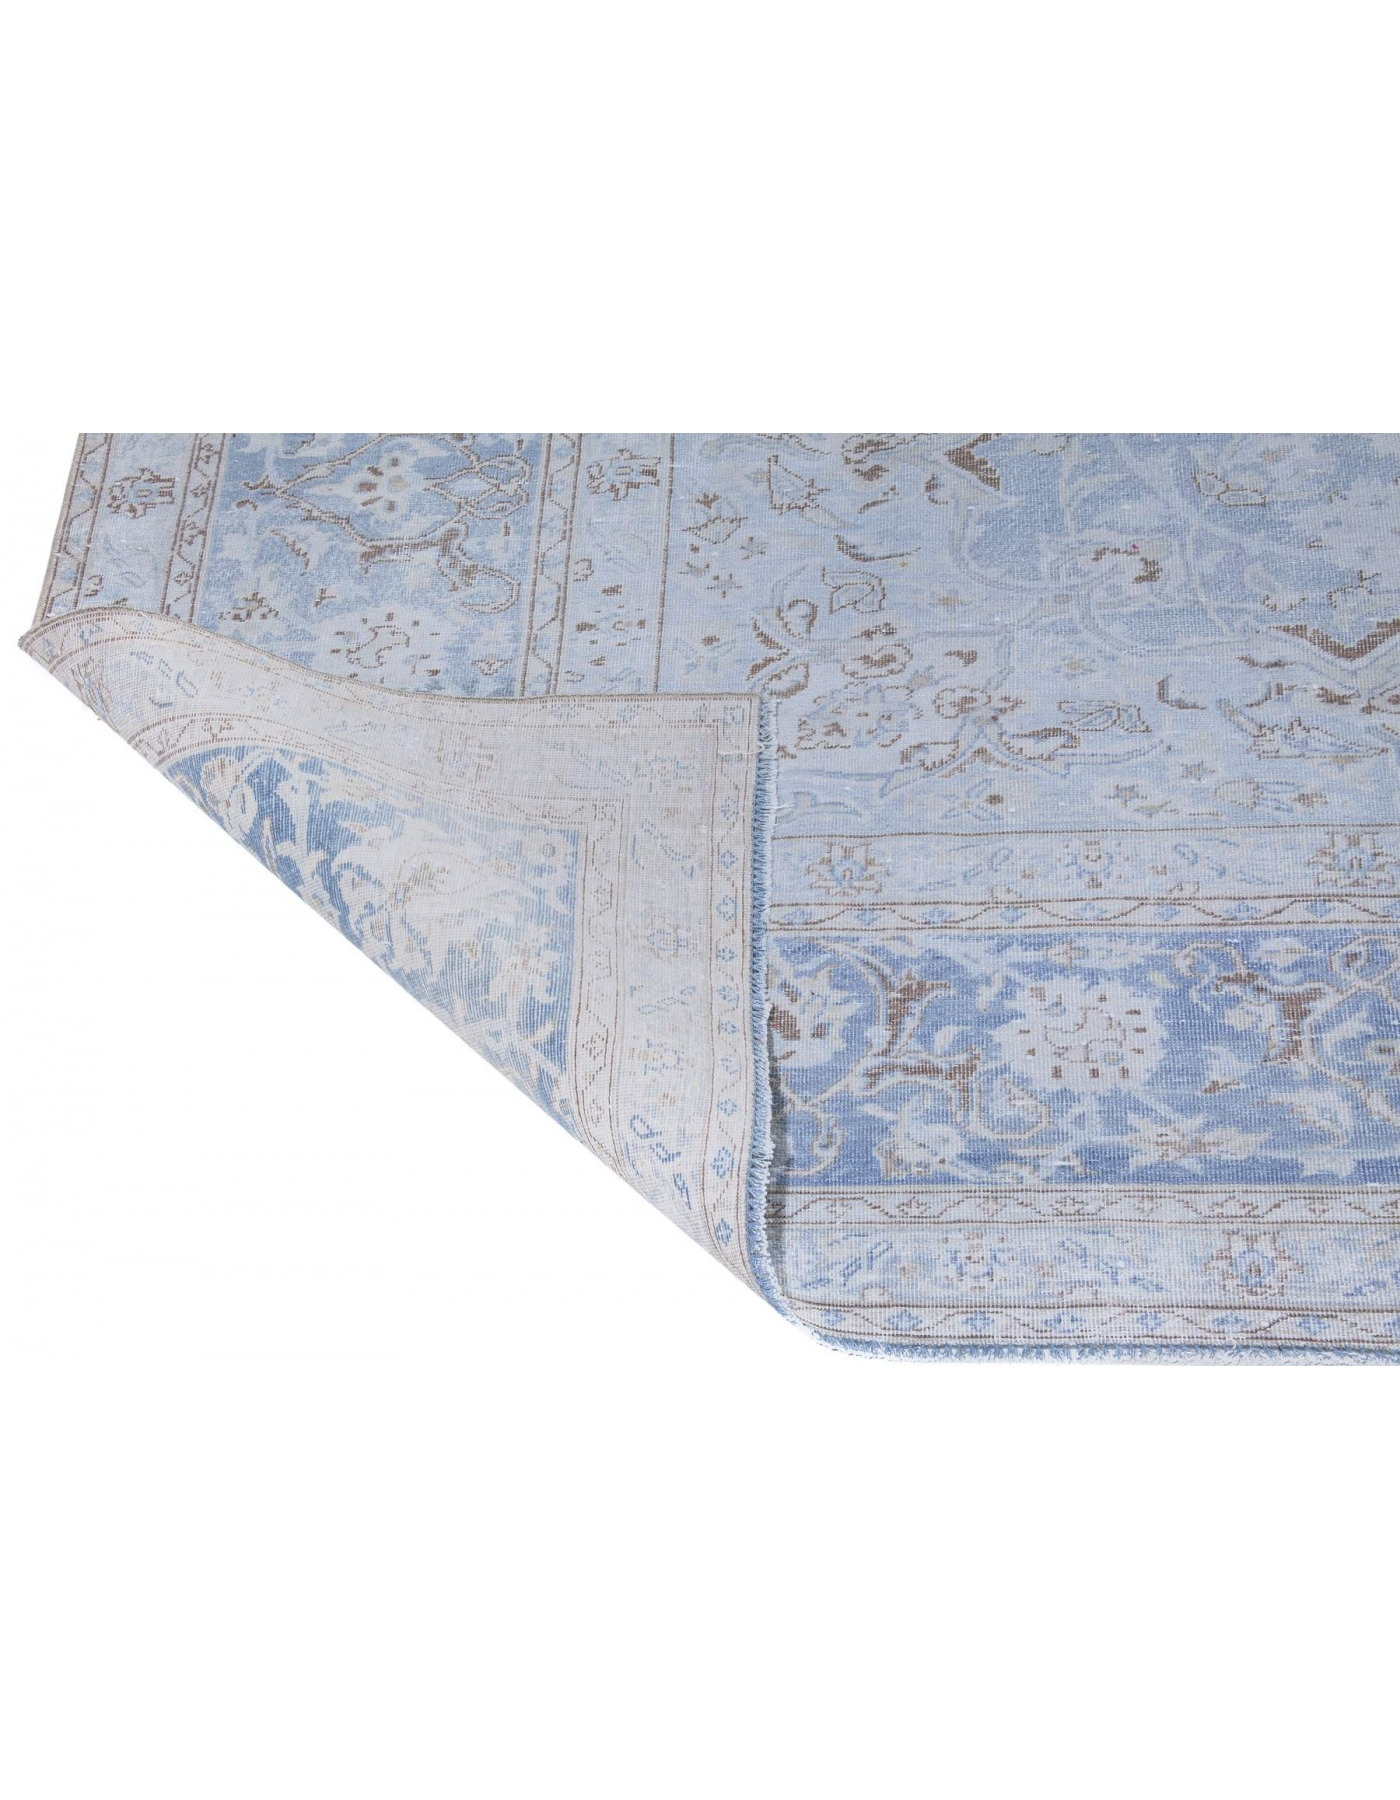 Washed Out Antique Large Wool Rug